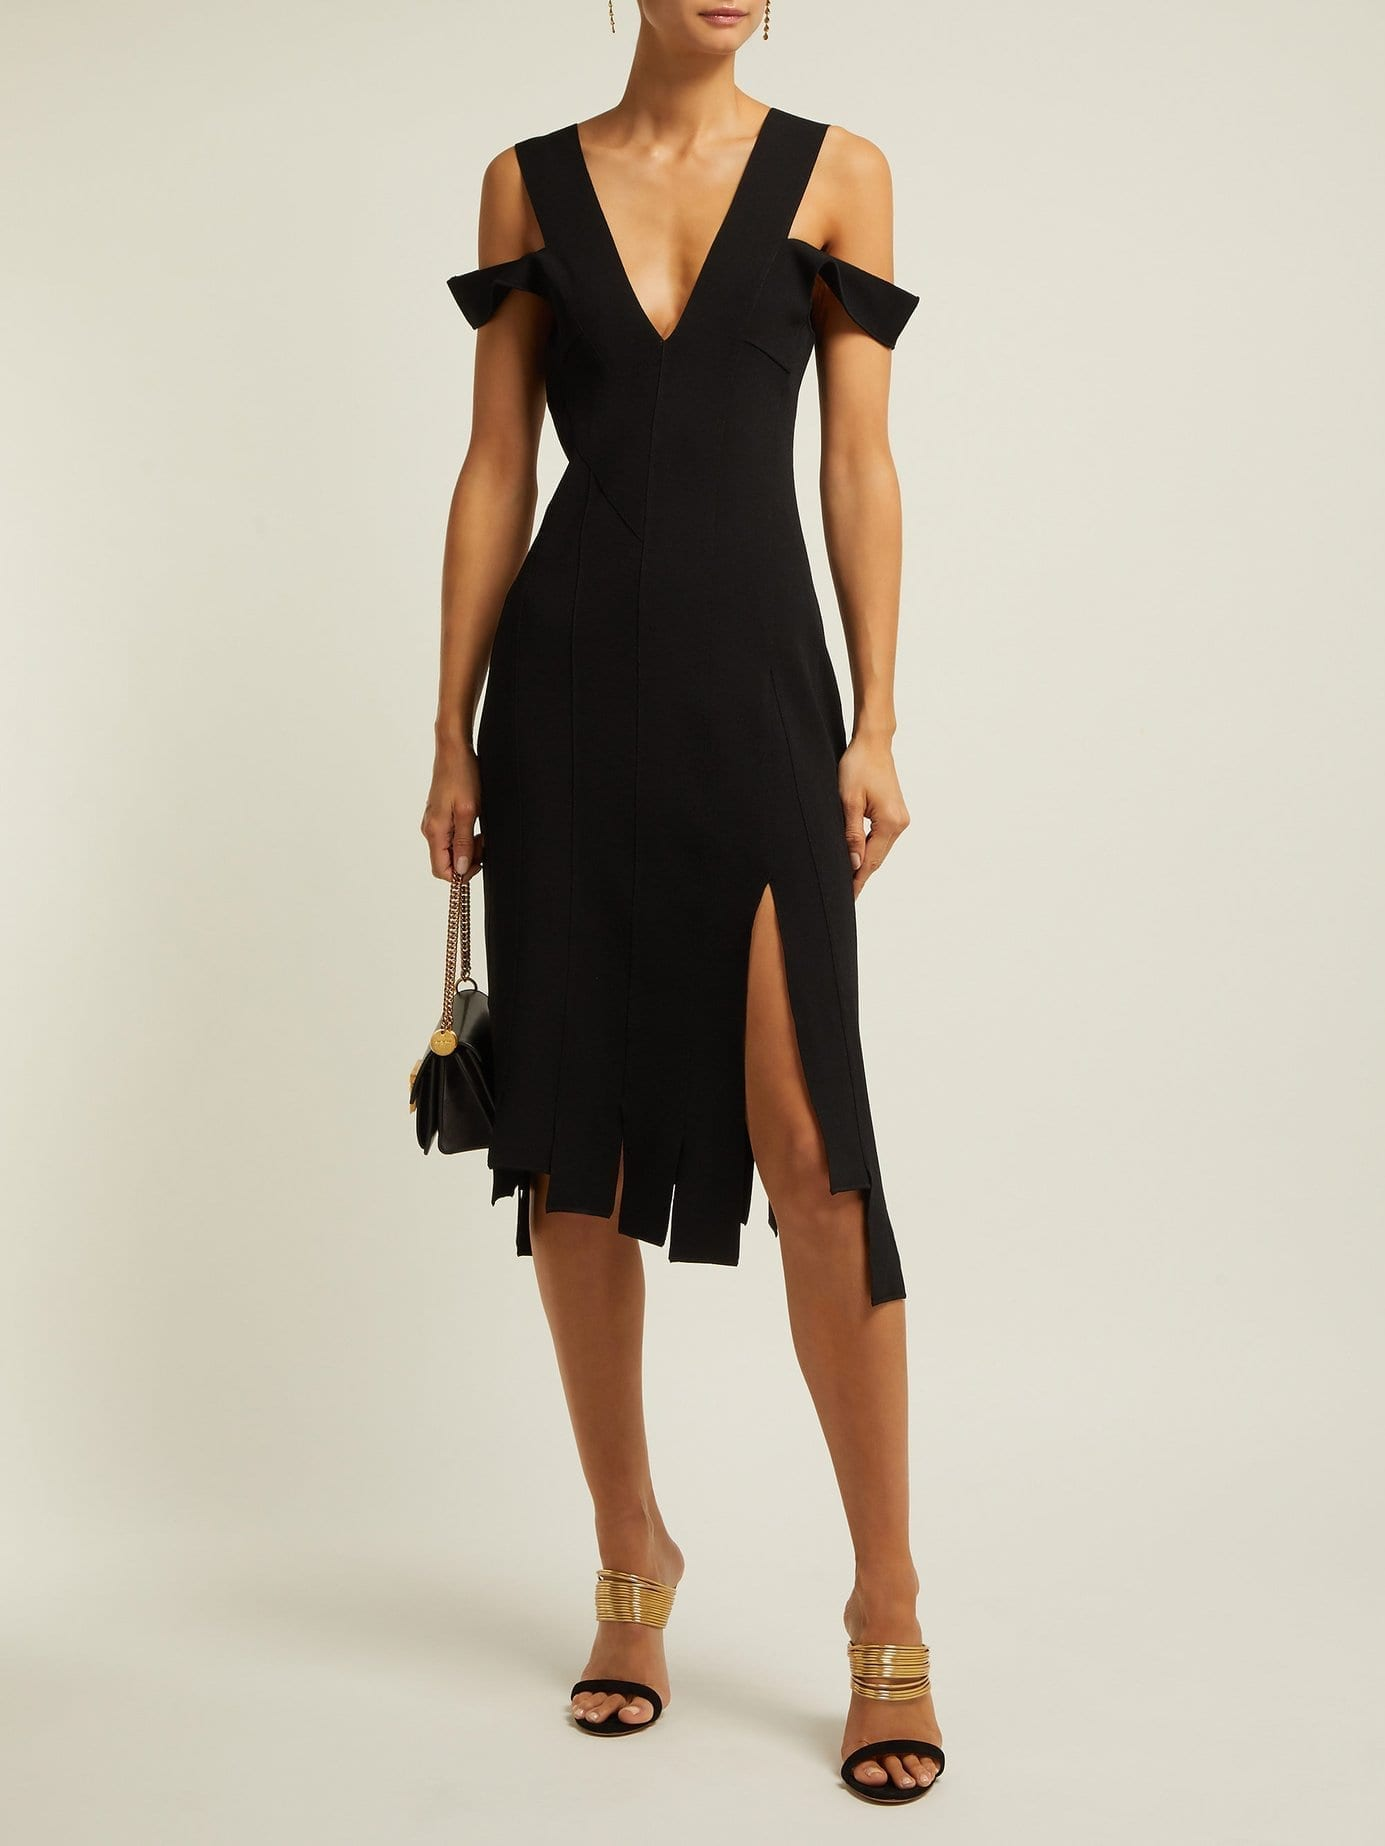 67cdaacefd86 ALTUZARRA Tiziana Stretch-Crepe Asymmetric Midi Black Dress